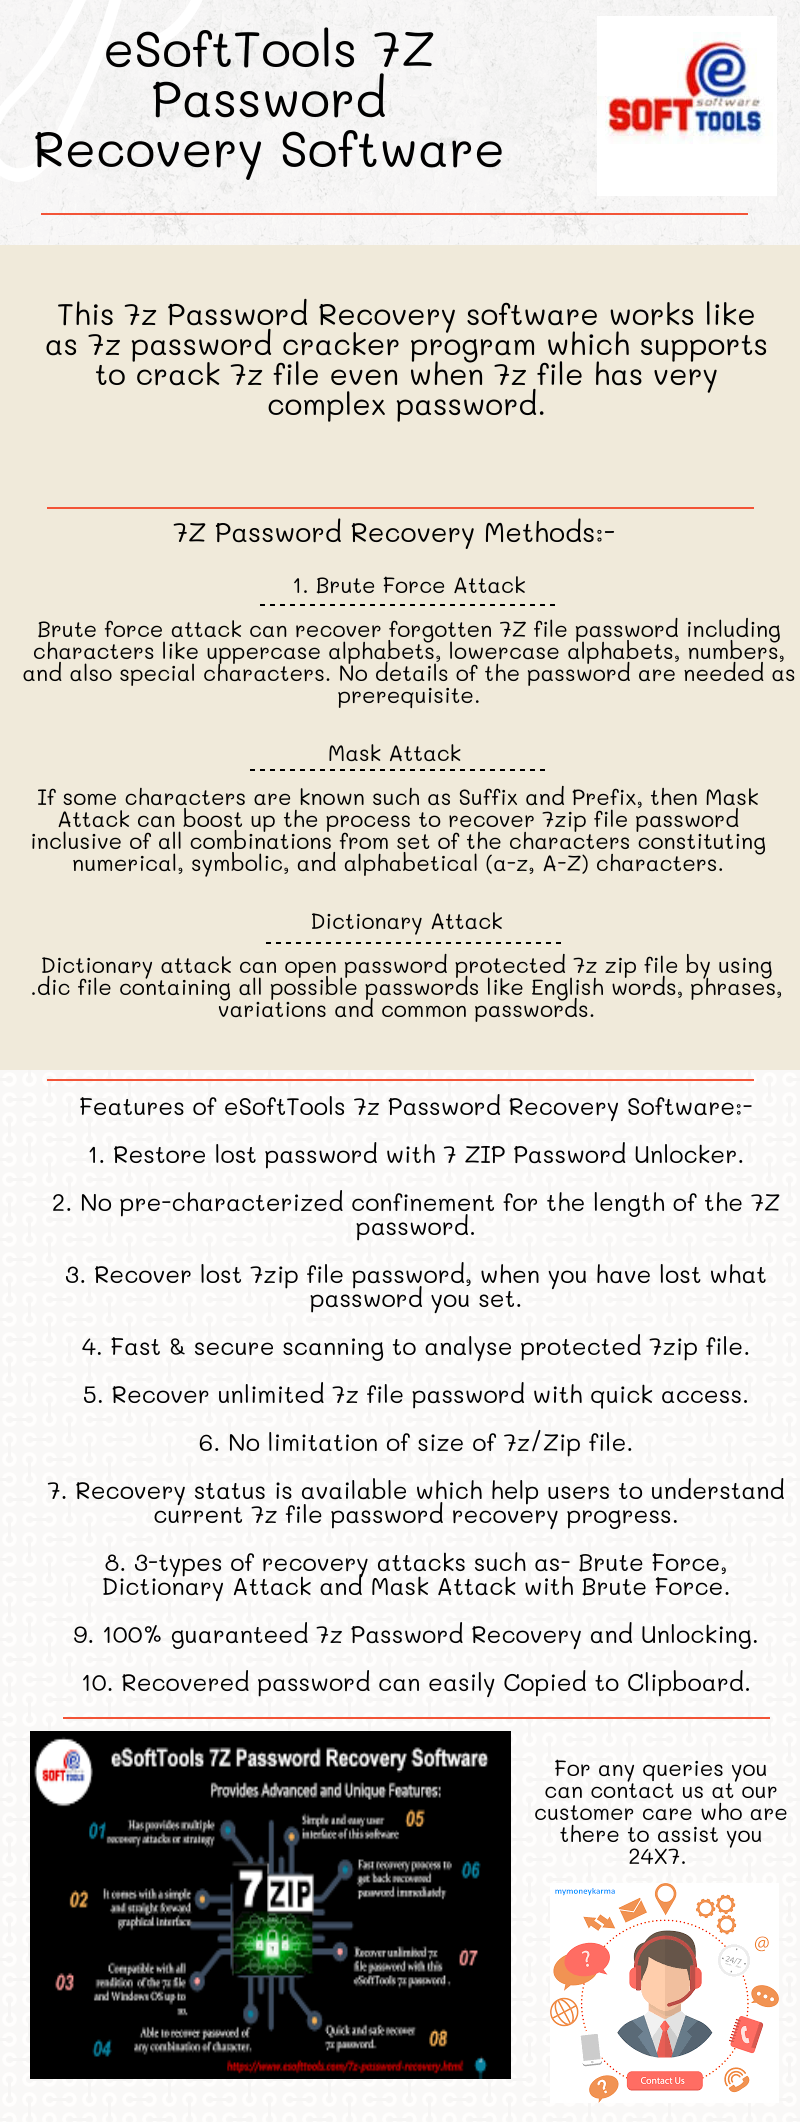 How to unlock lost and forgotten 7z passwords?